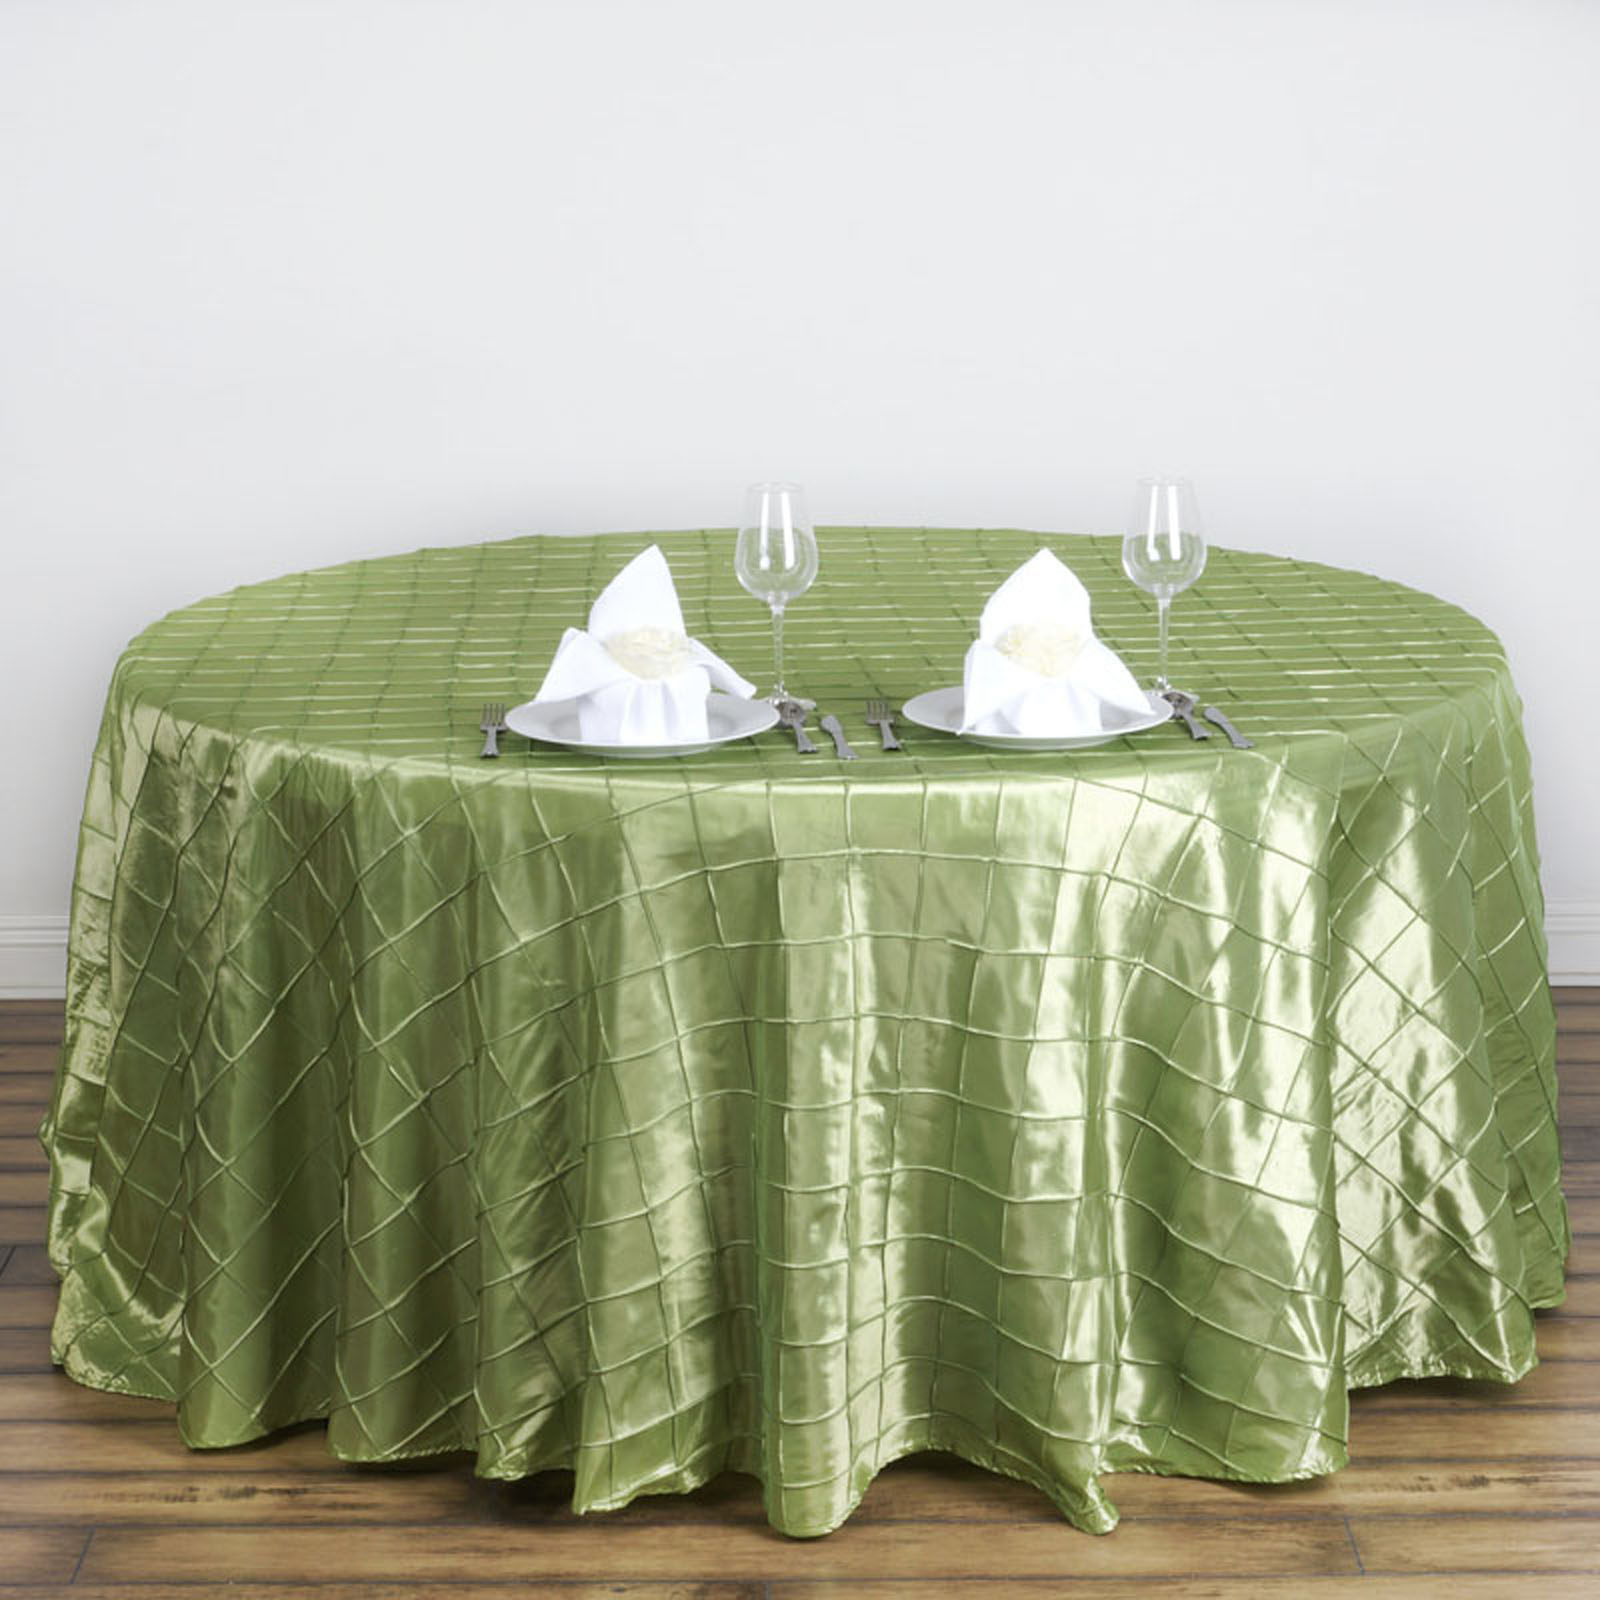 Exceptional 10 Pcs 120 034 Pintuck Fancy Round Tablecloths